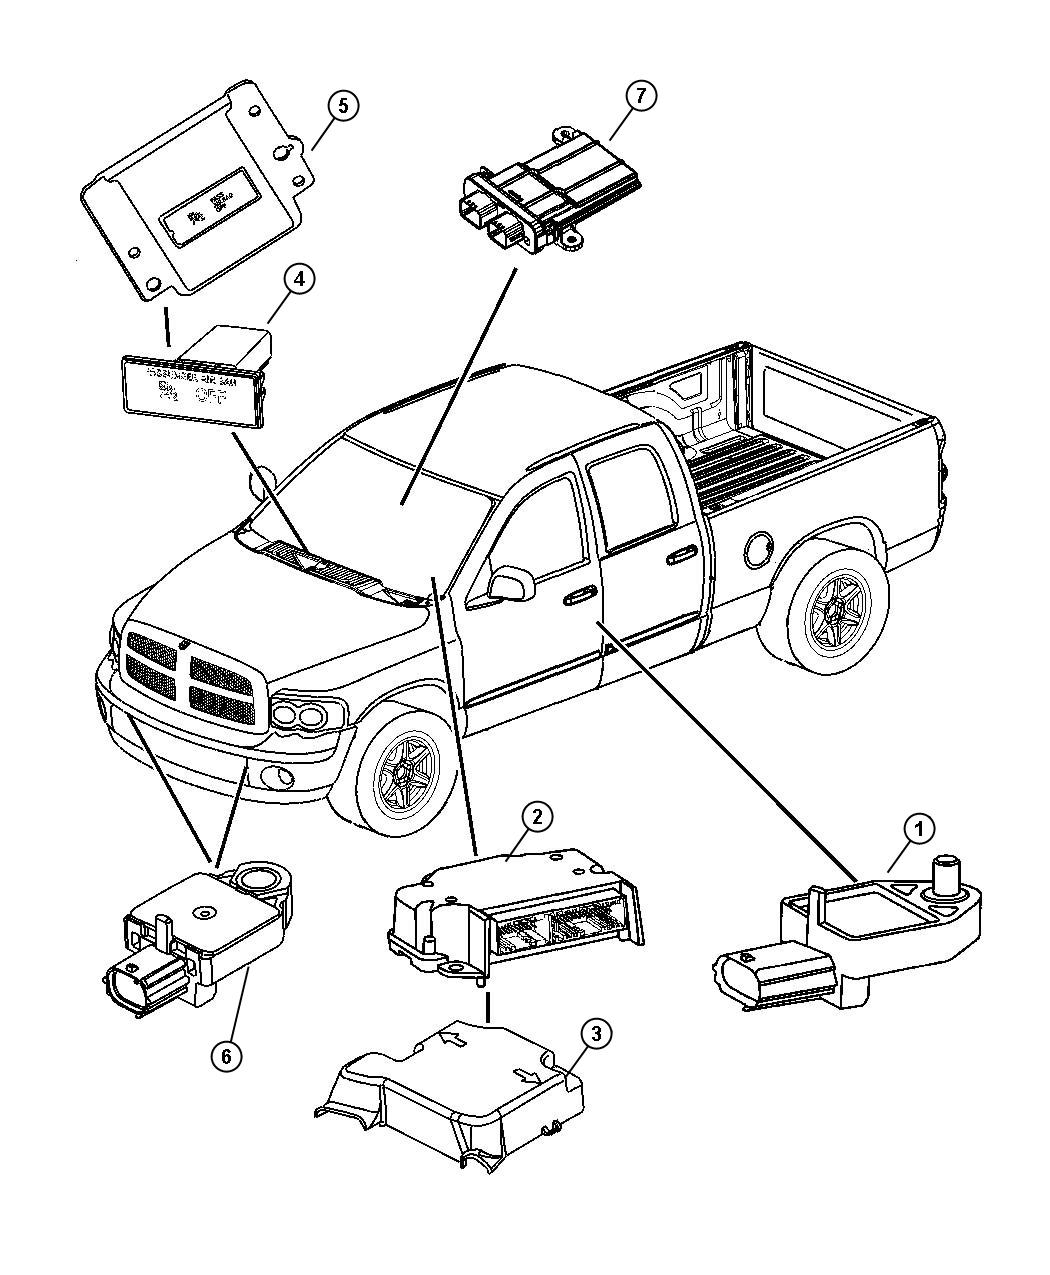 Dodge Ram 1500 Air Bag Modules and Sensors